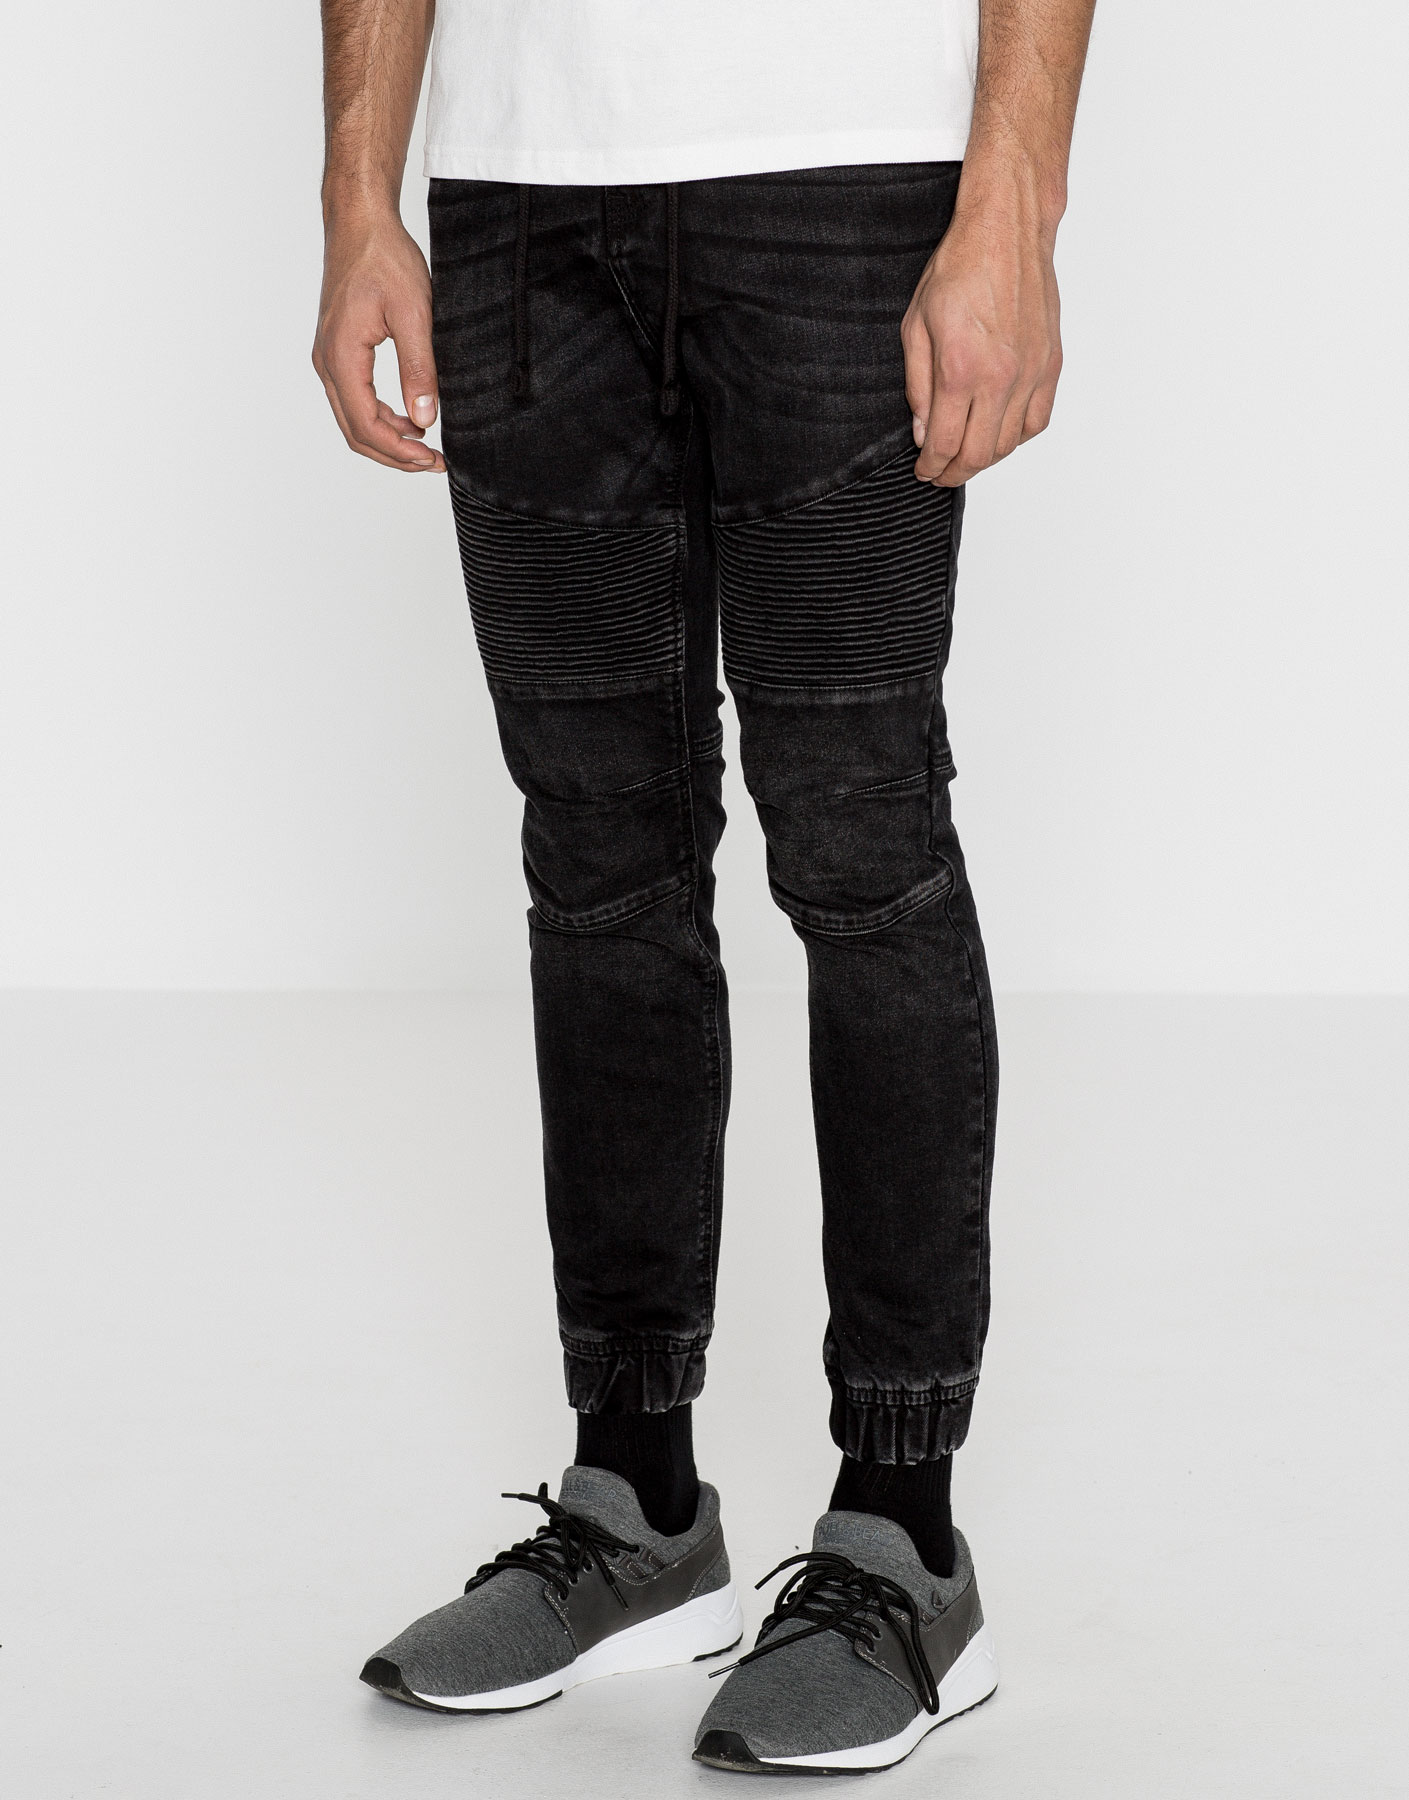 Black skinny fit biker jogging trousers